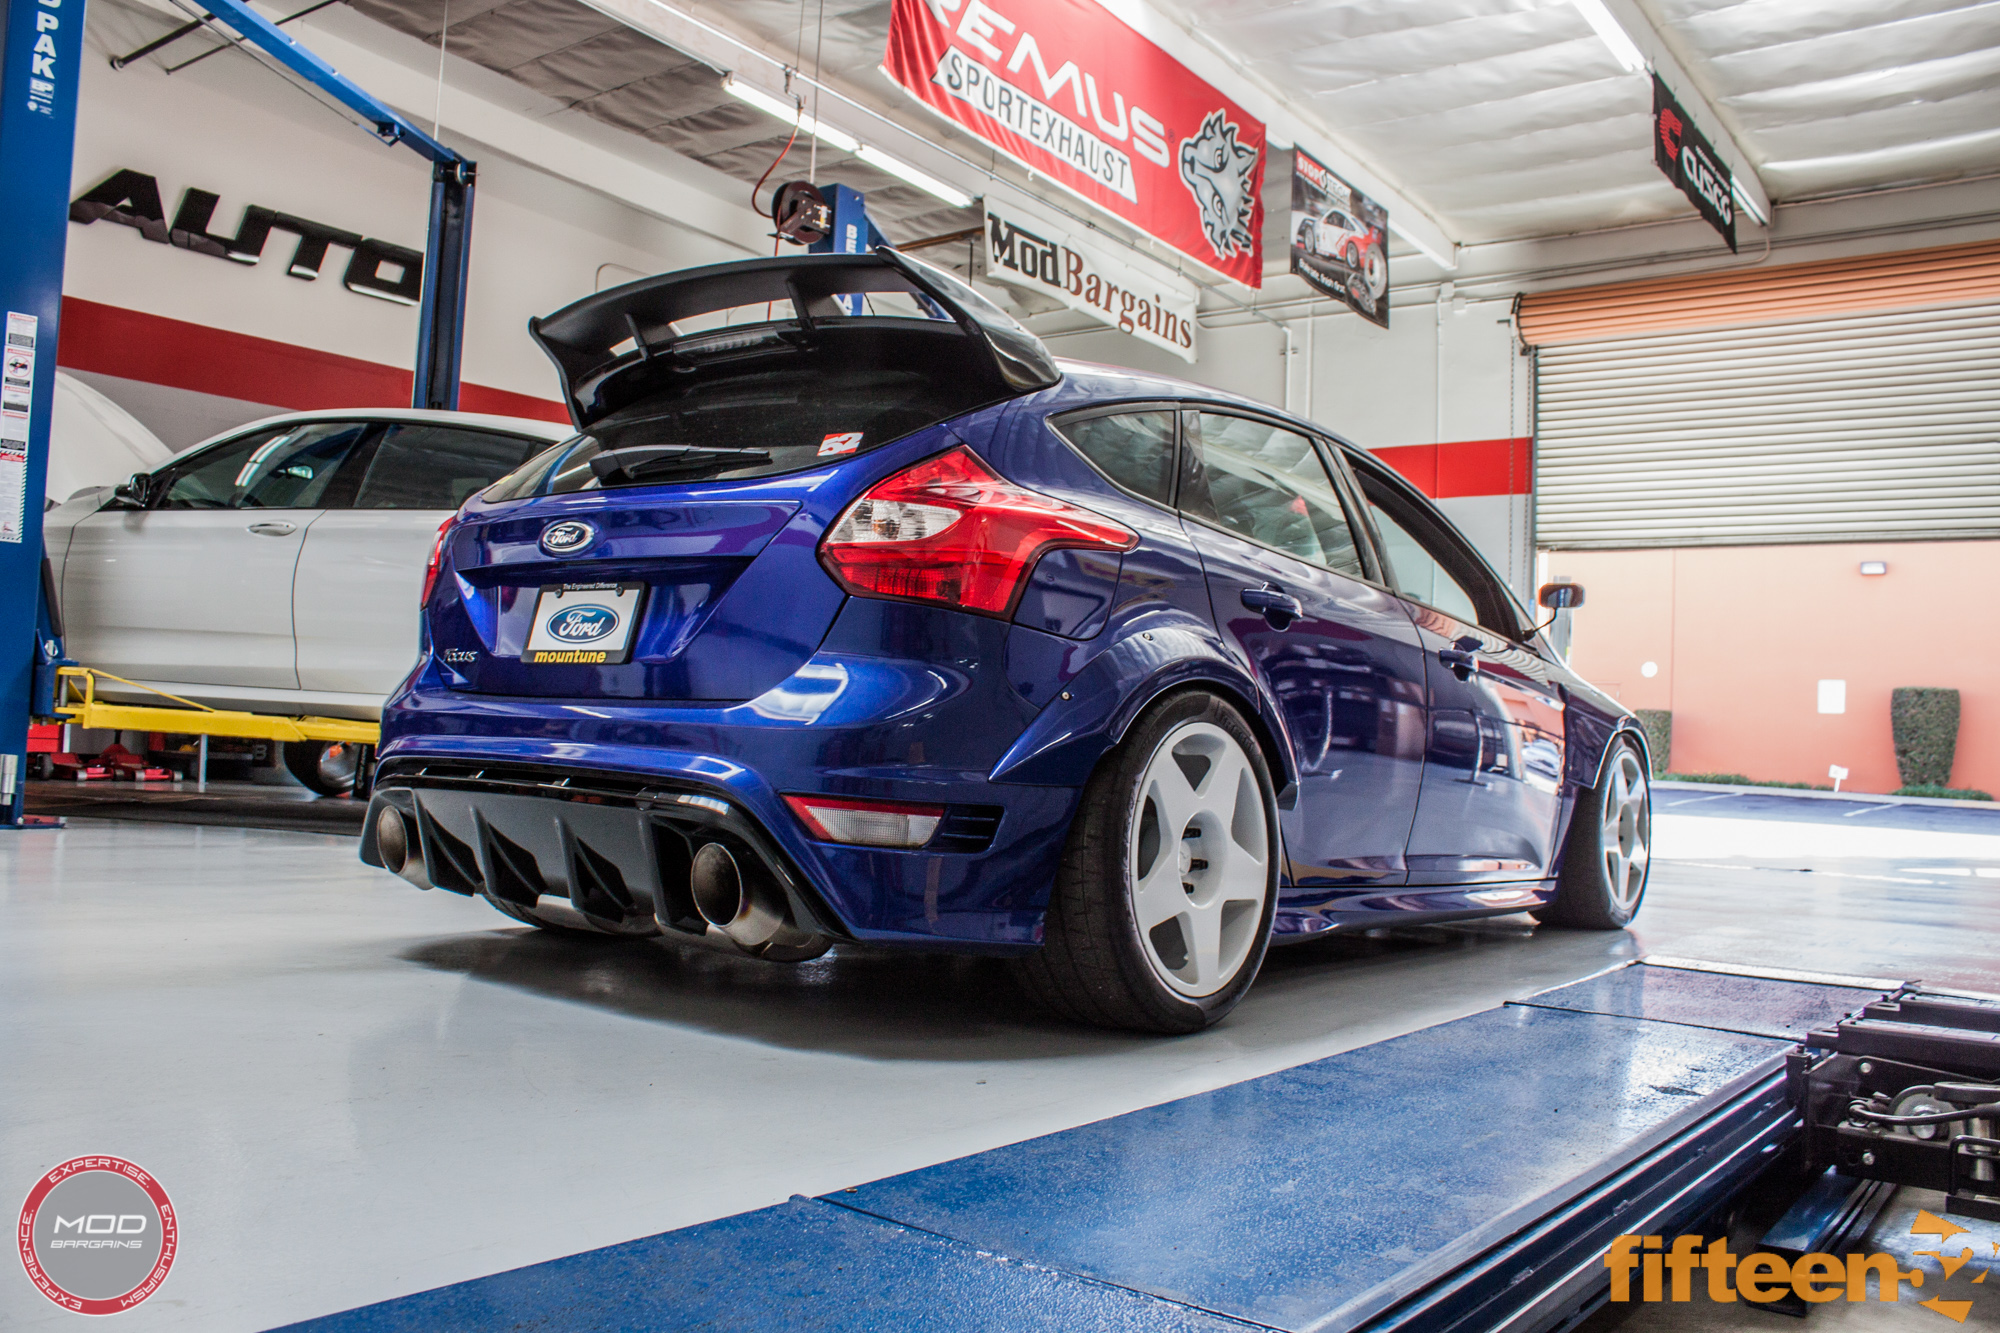 Ford Focus Oil Change >> Spotlight: fifteen52's INSANE 500hp Ford Focus ST TrackSTer